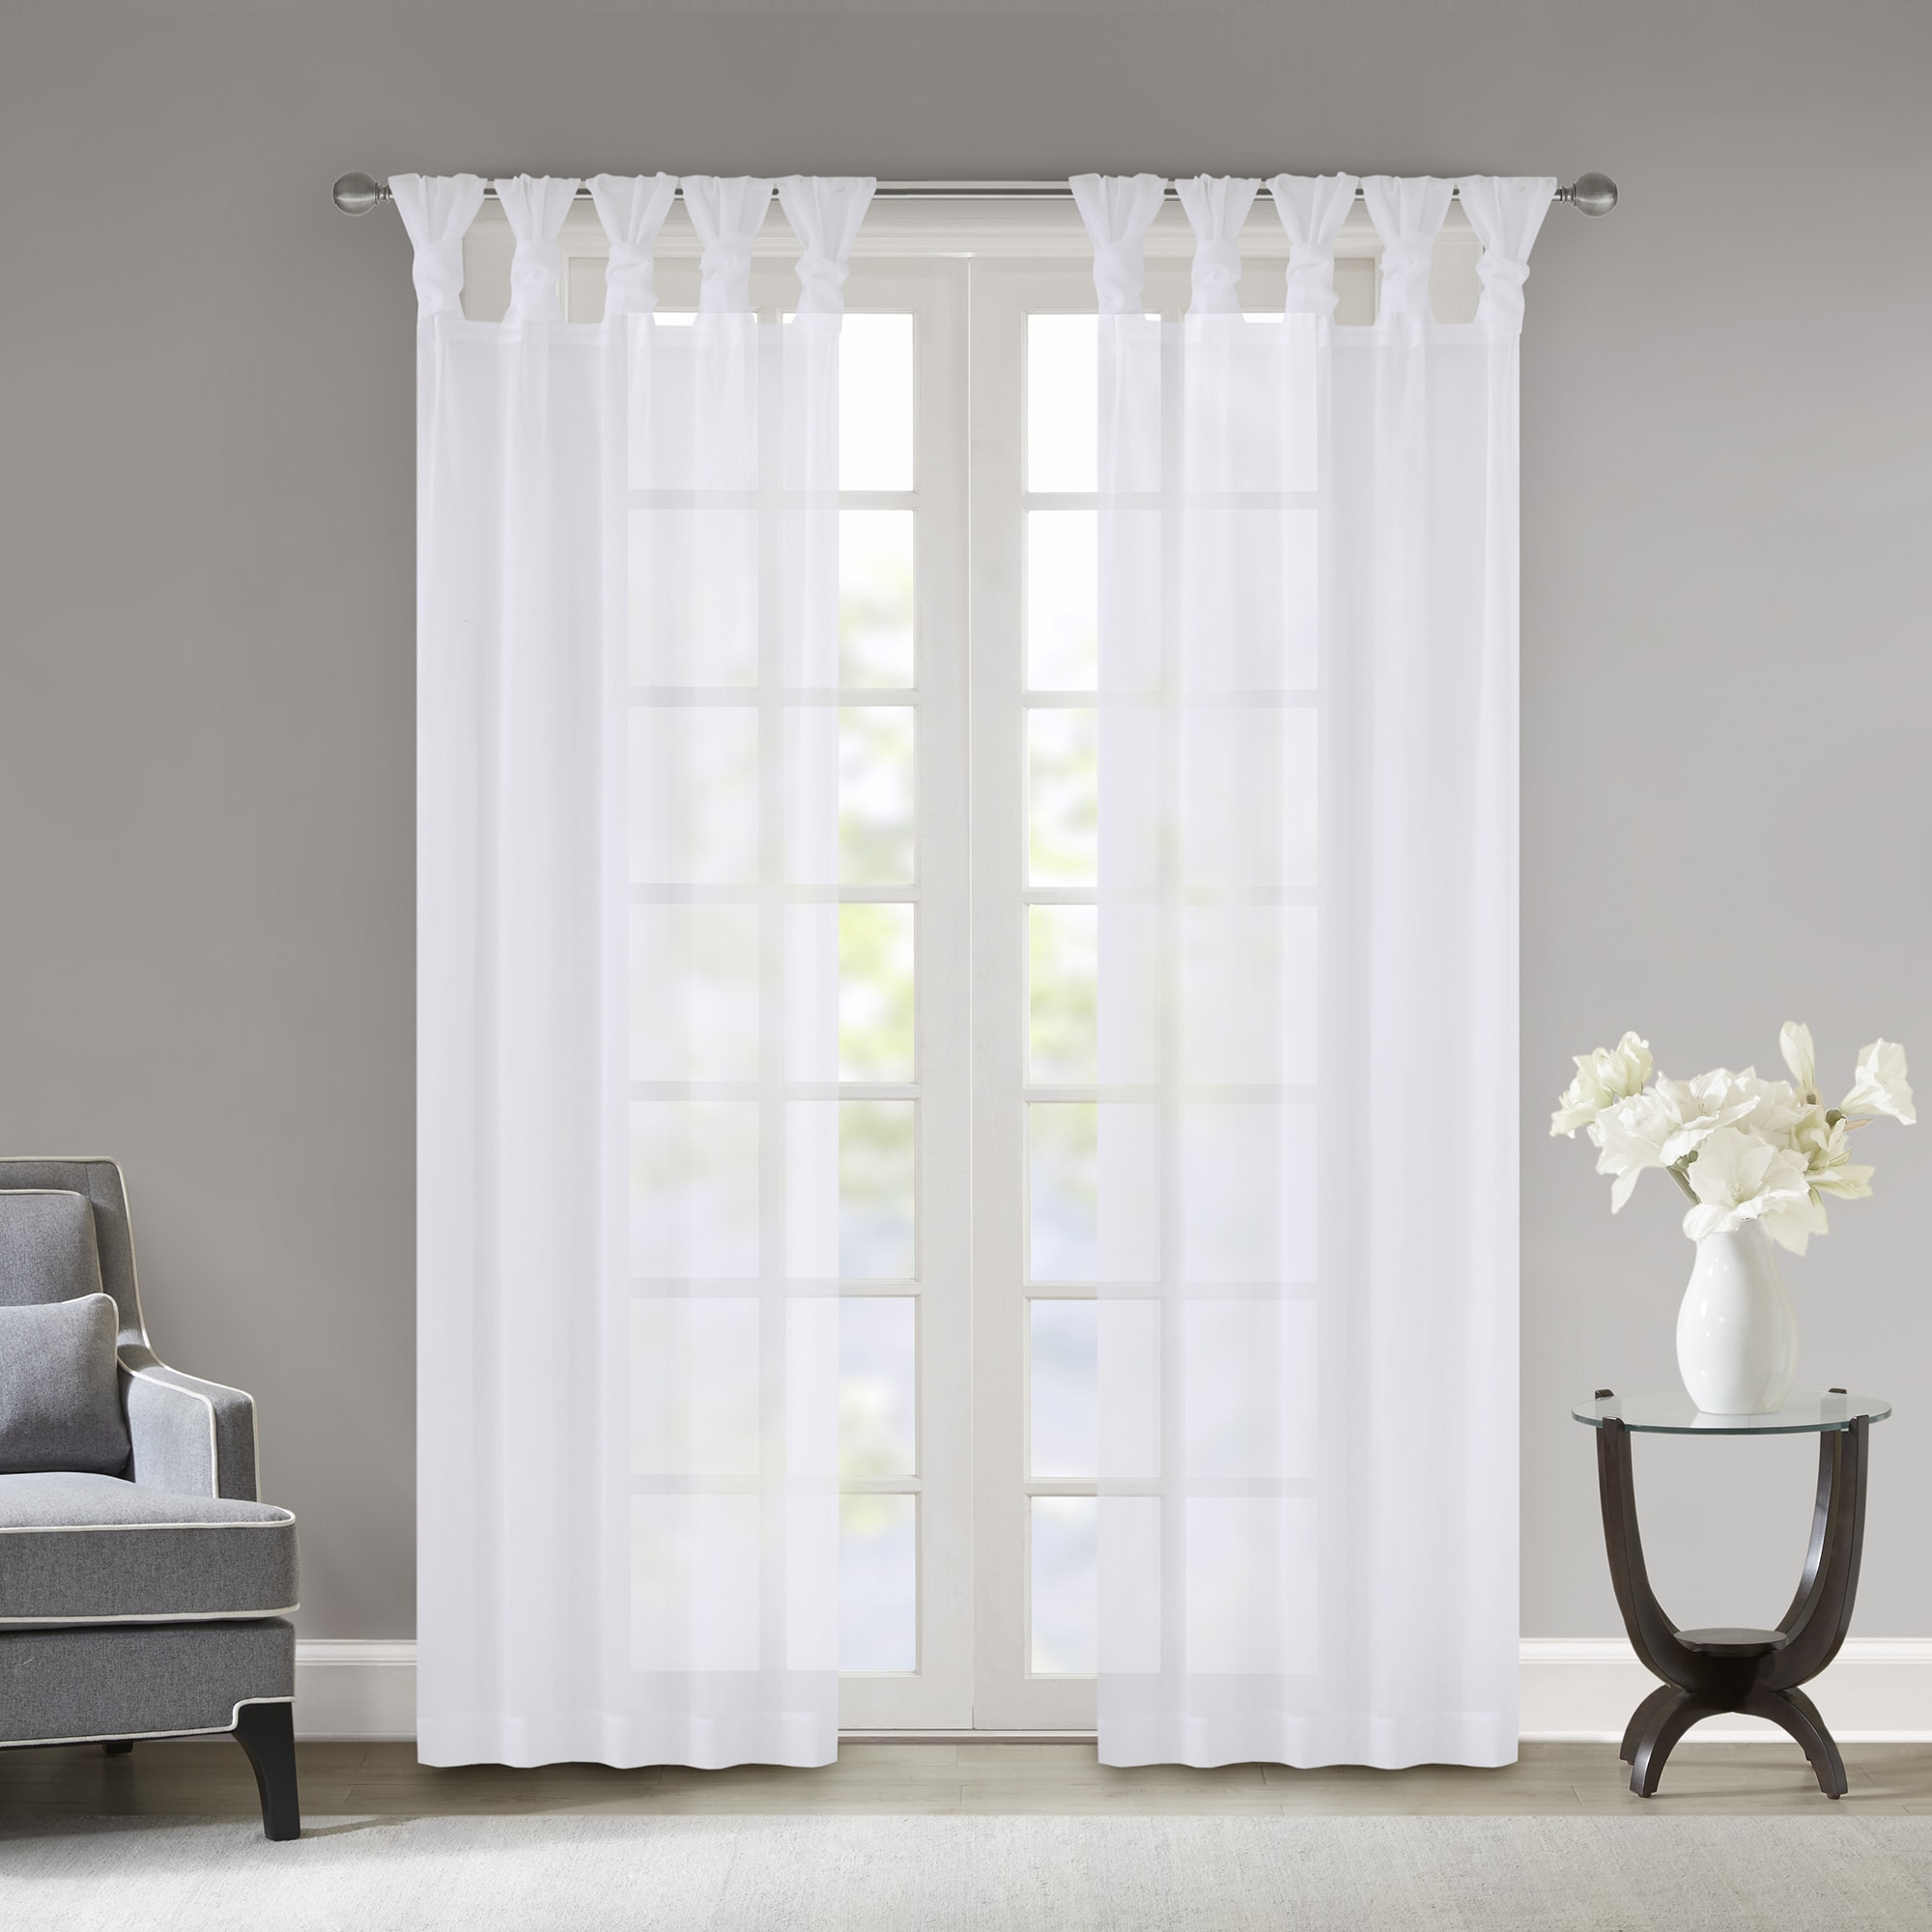 Most Current Madison Park Elowen White Twisted Tab Voile Sheer Curtain With Regard To Elowen White Twist Tab Voile Sheer Curtain Panel Pairs (Gallery 8 of 20)